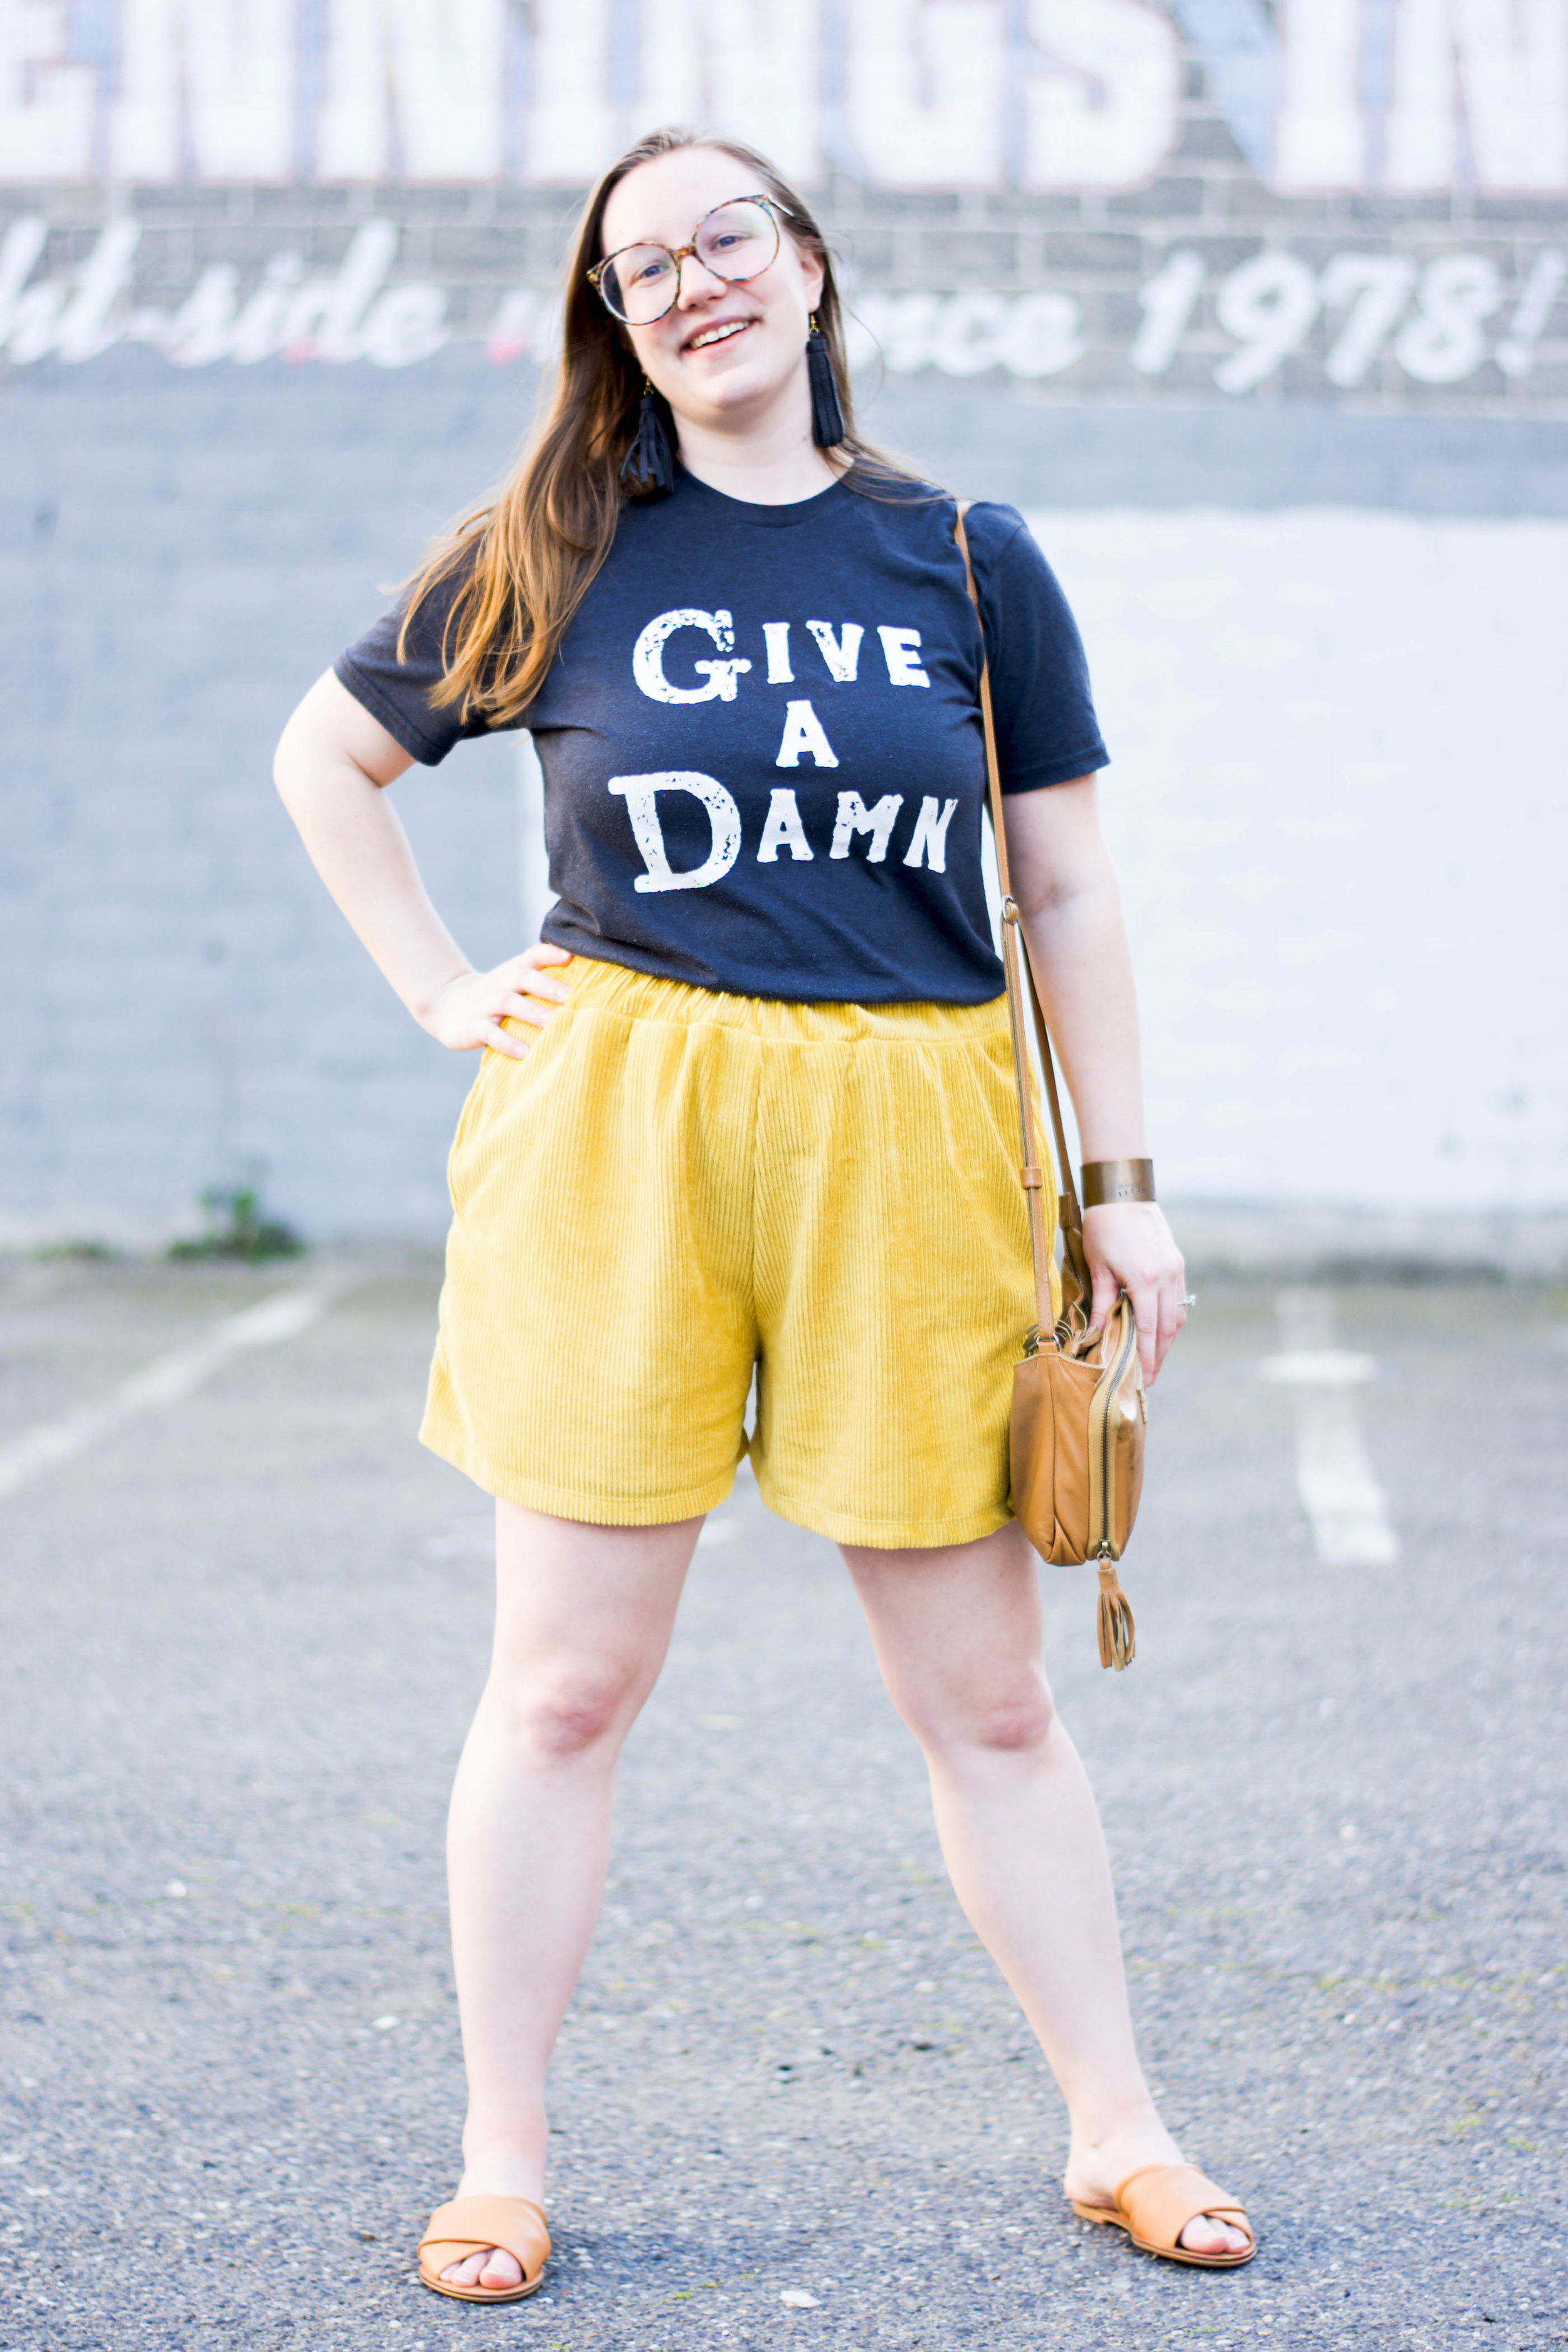 Summer shorts outfit inspo // A Week Of Values-Driven Outfits With Emily Waddell From The Honest Consumer on The Good Trade